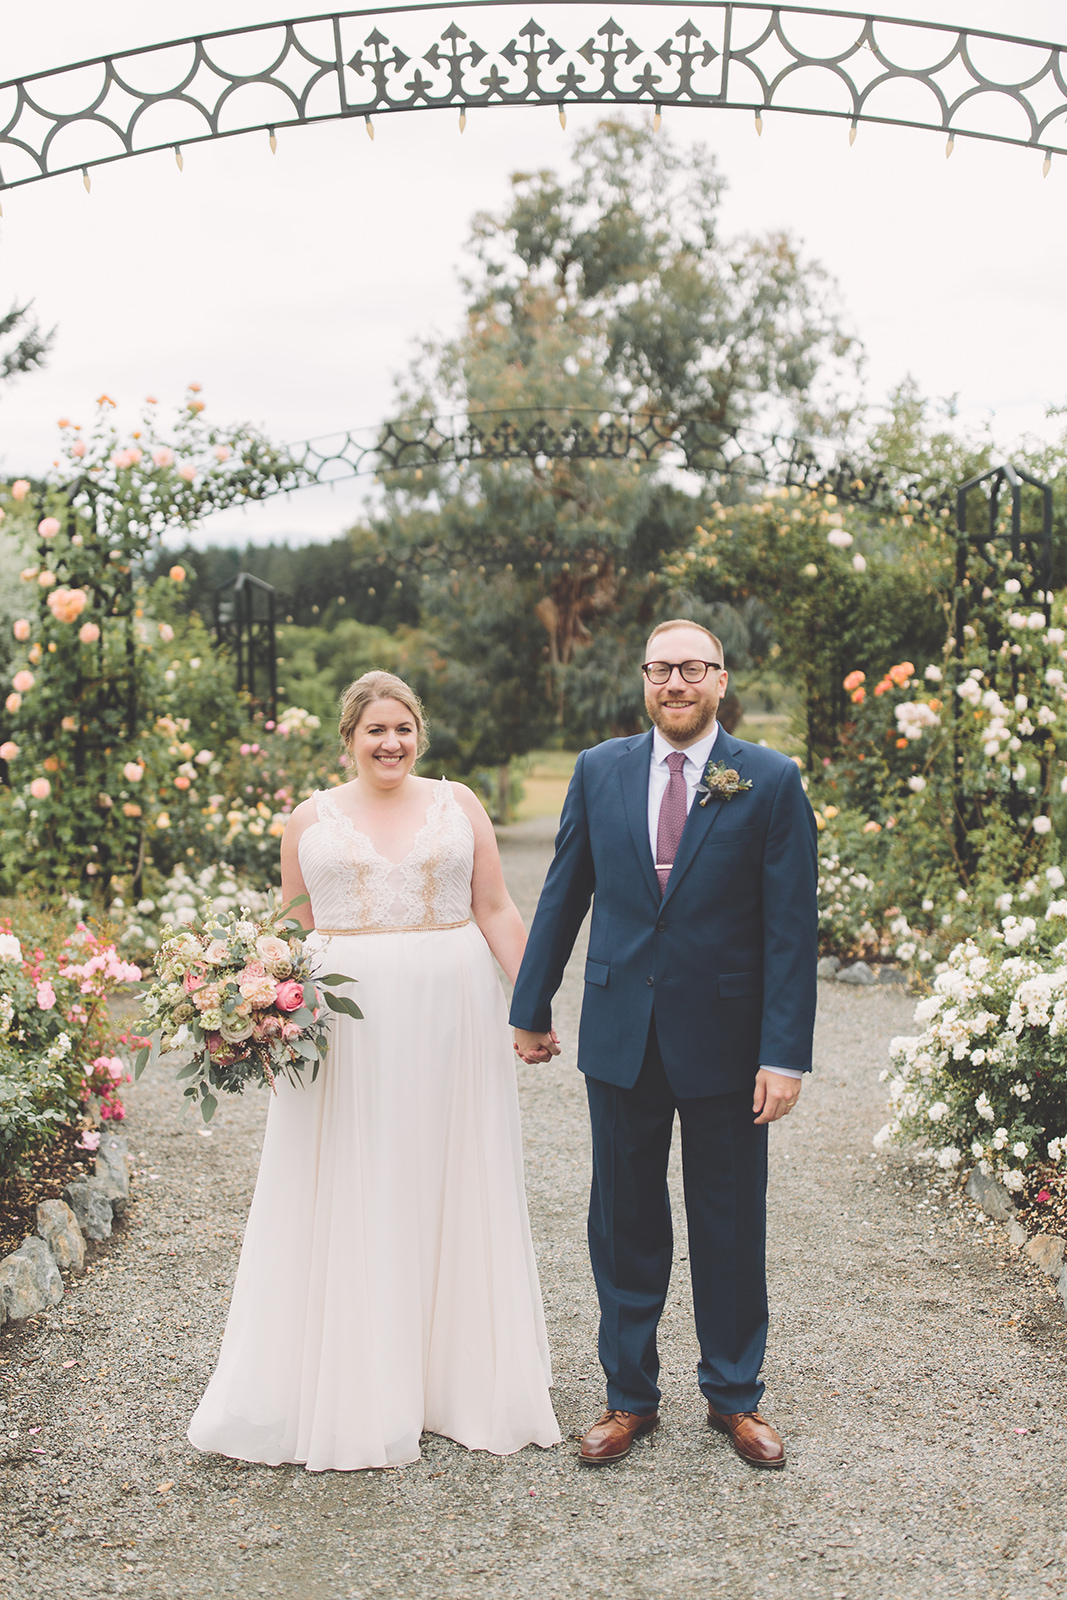 Katie & Nick - Gardens at HCP & Fireside Grill